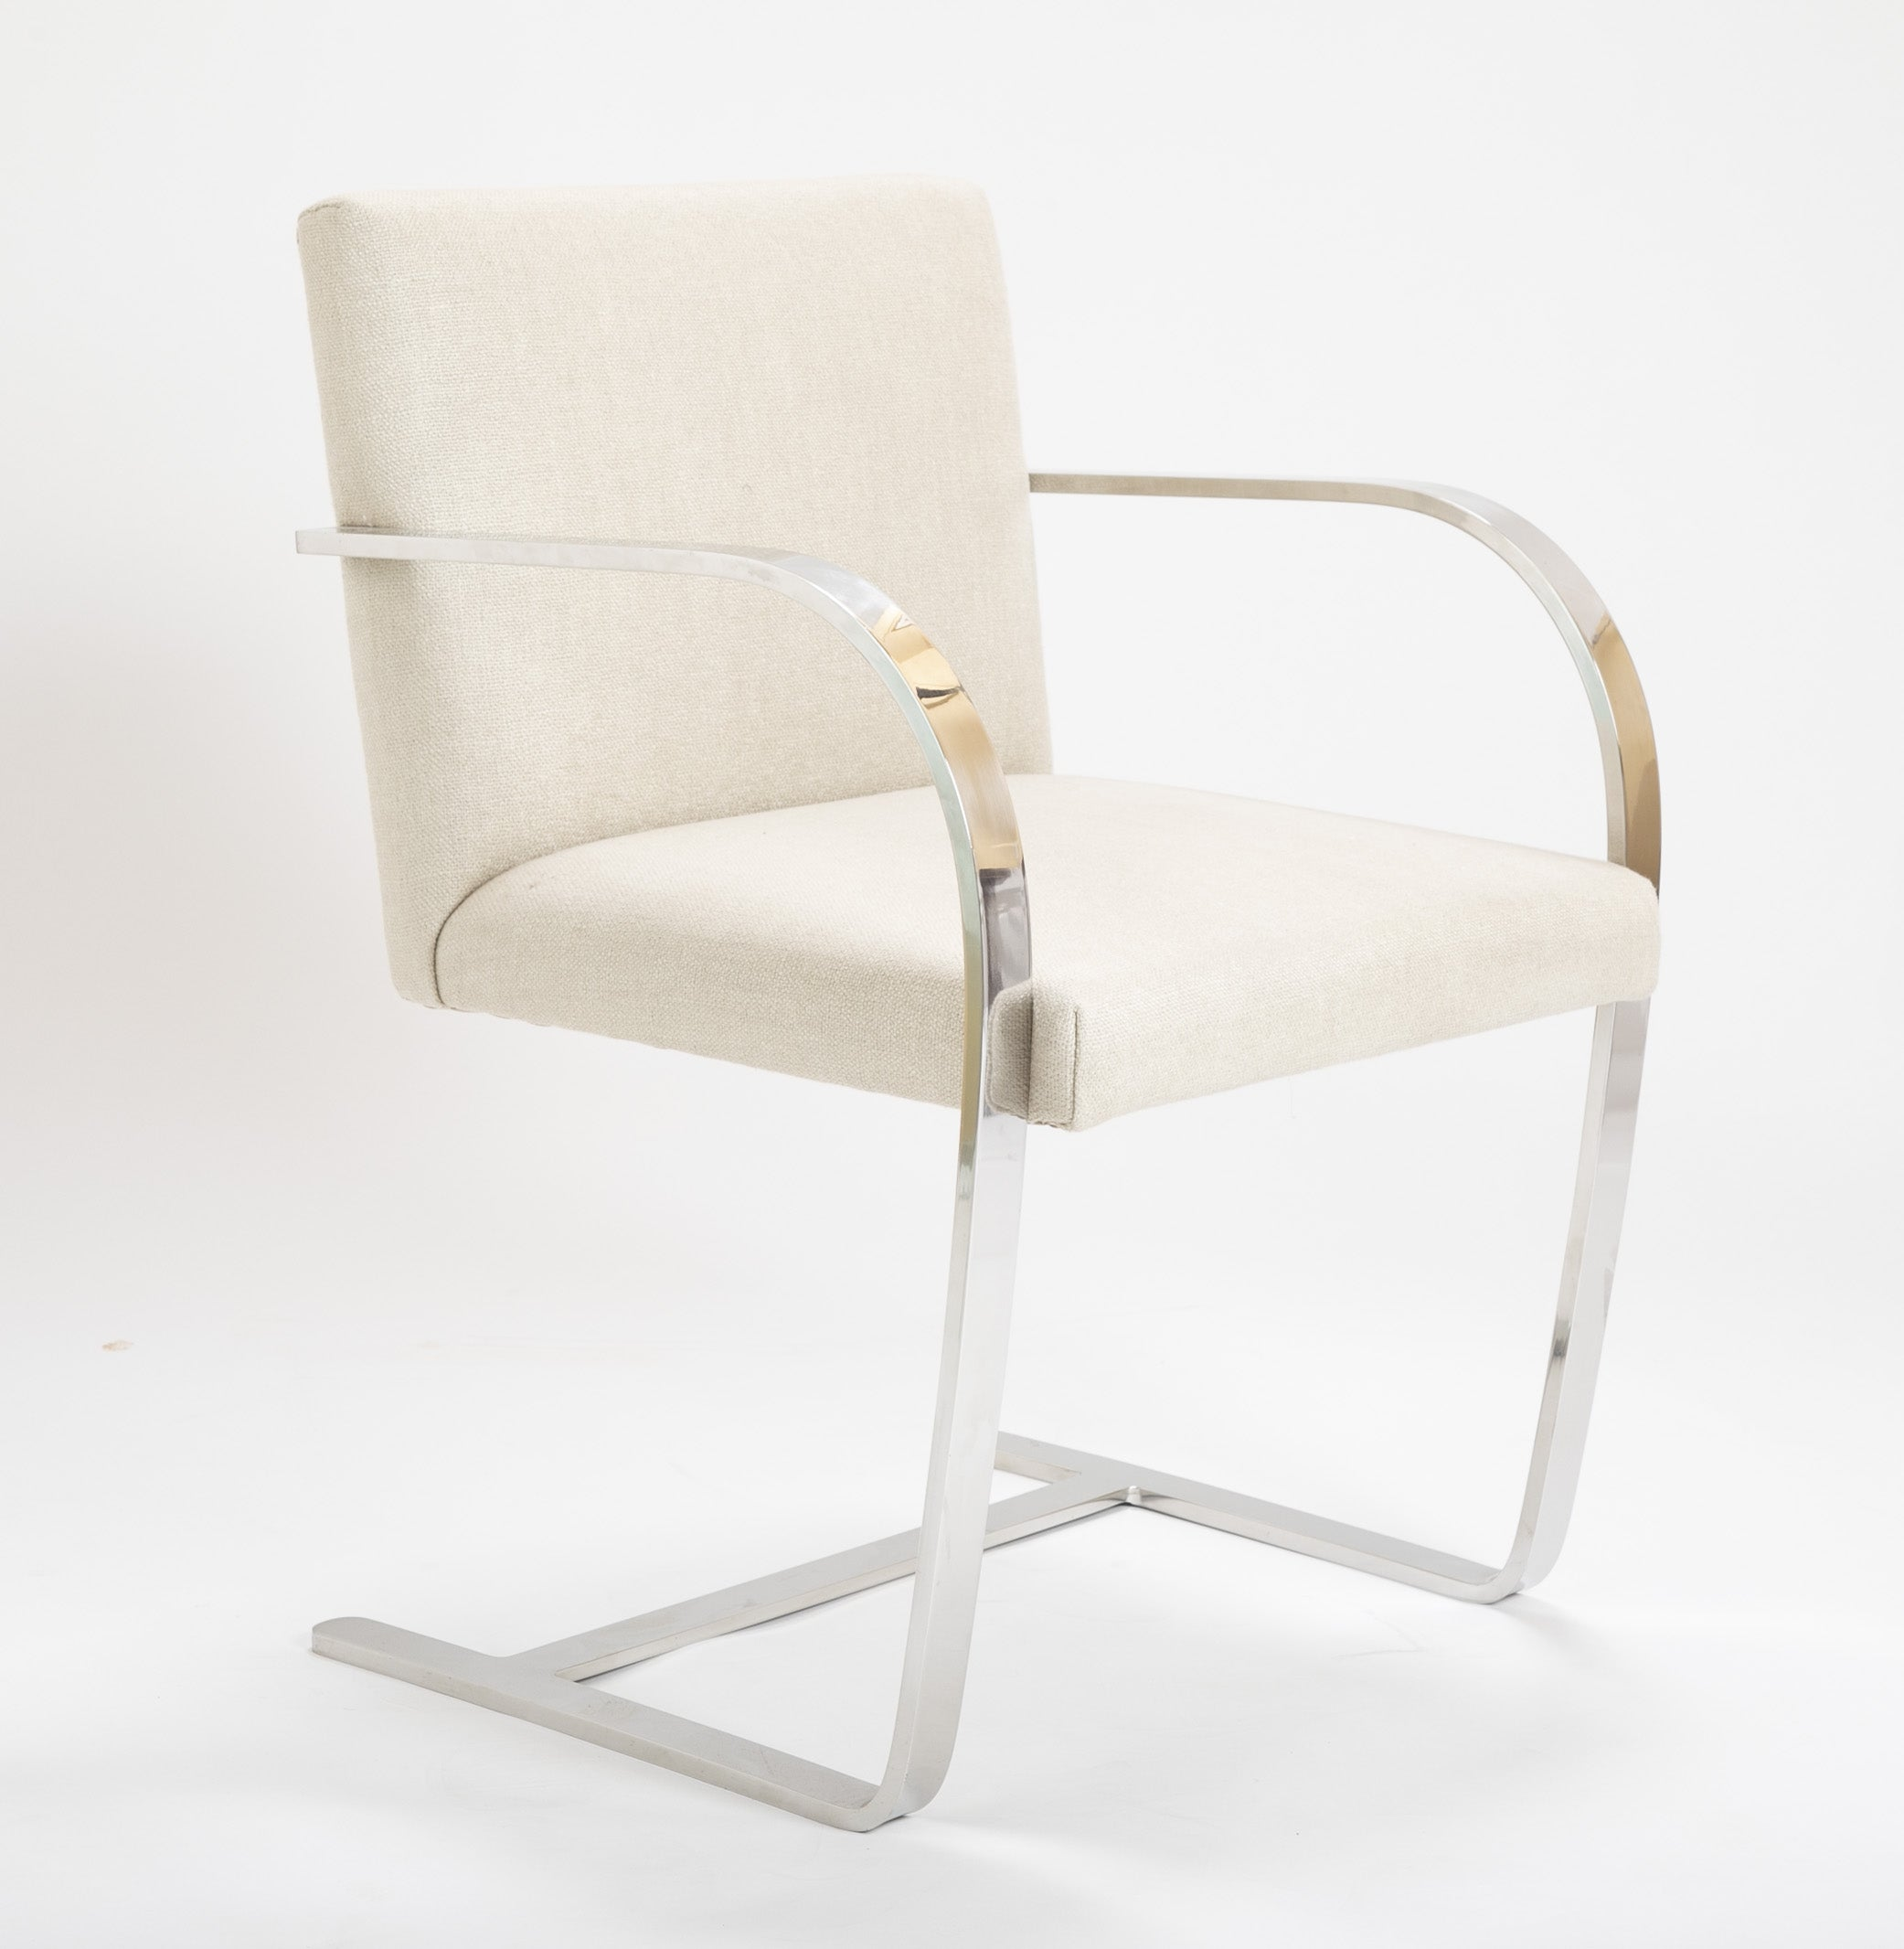 Knoll Brno Flat Bar Chair Designed by Marcel Breuer